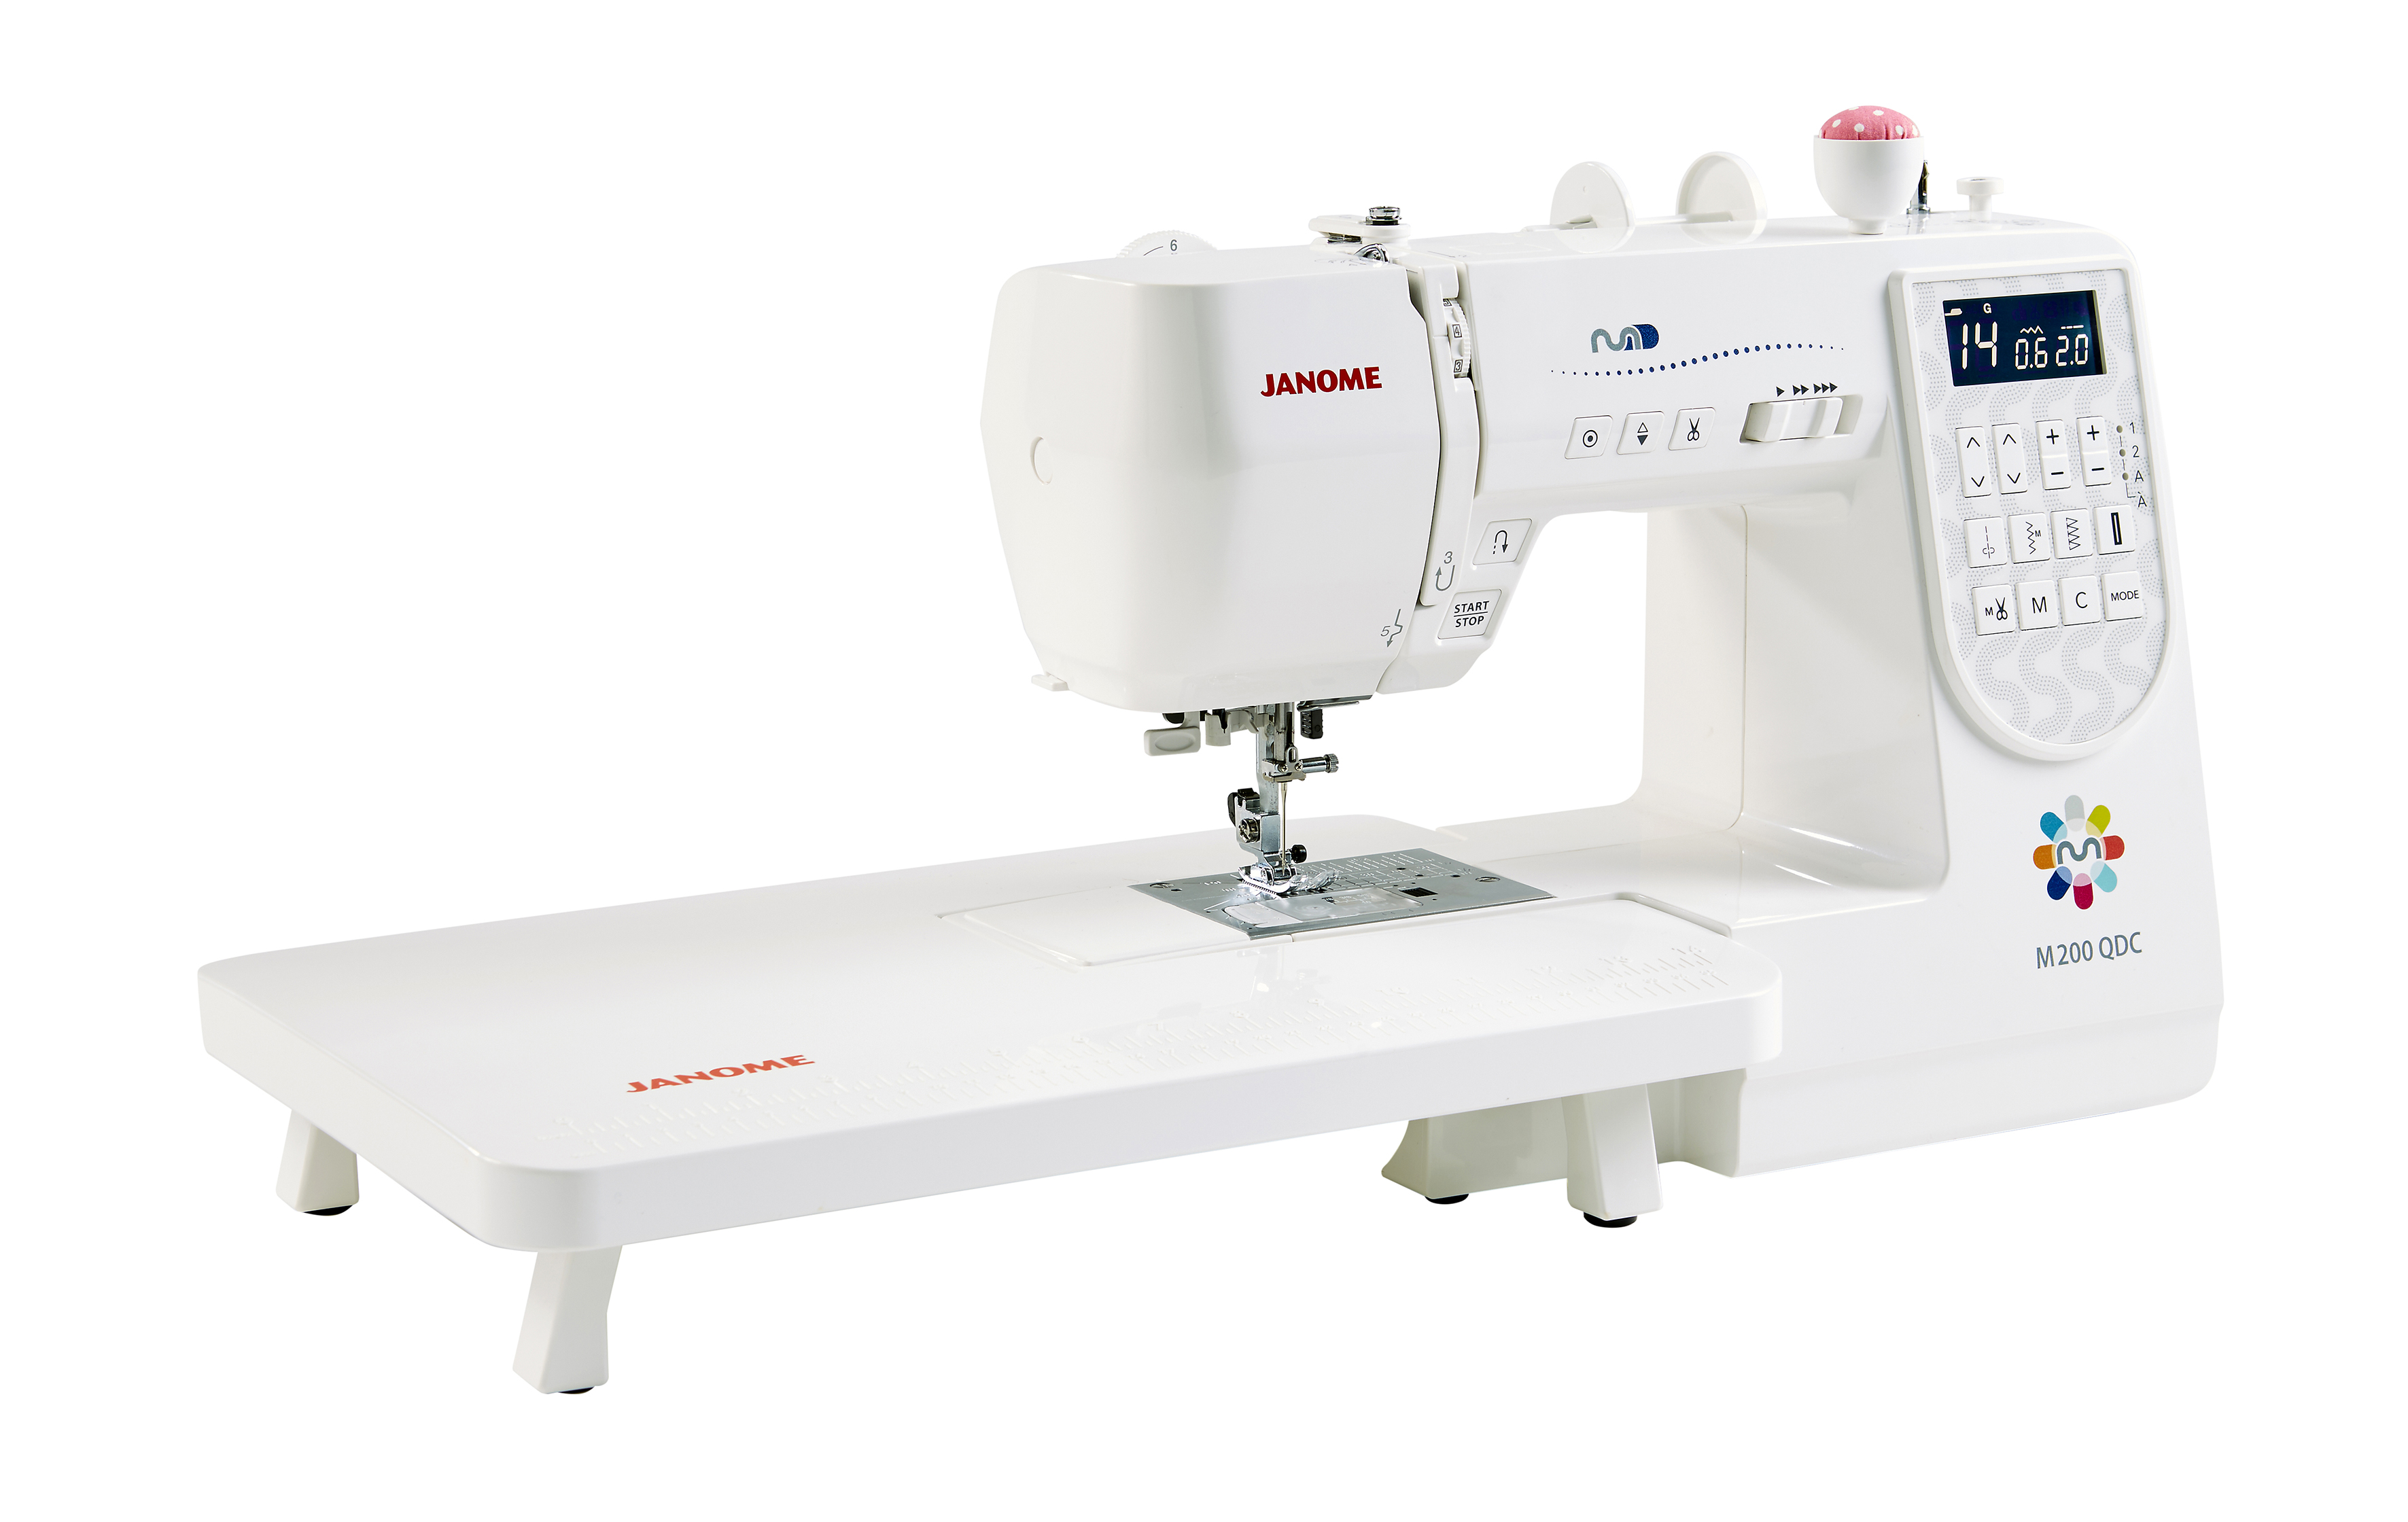 Janome M200 QDC 2 - Franklins Group